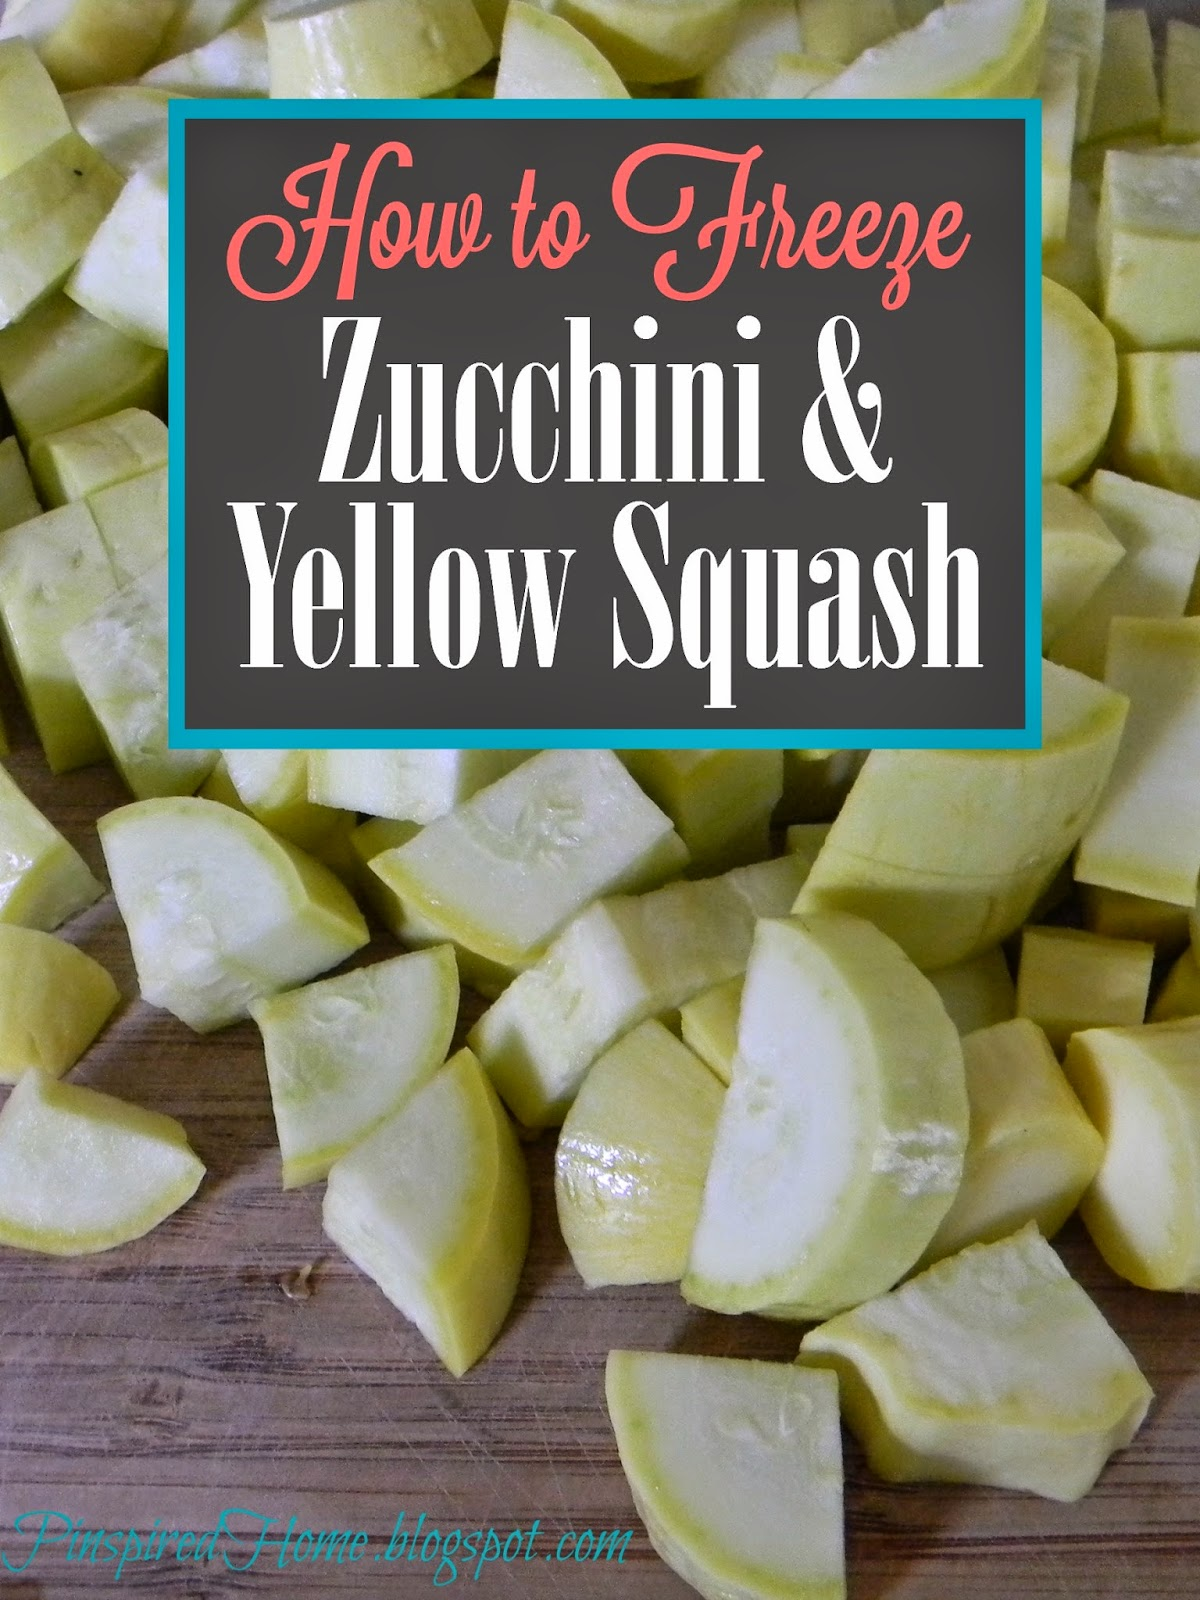 http://pinspiredhome.blogspot.com/2014/08/how-to-freeze-zucchini-and-yellow-squash.html